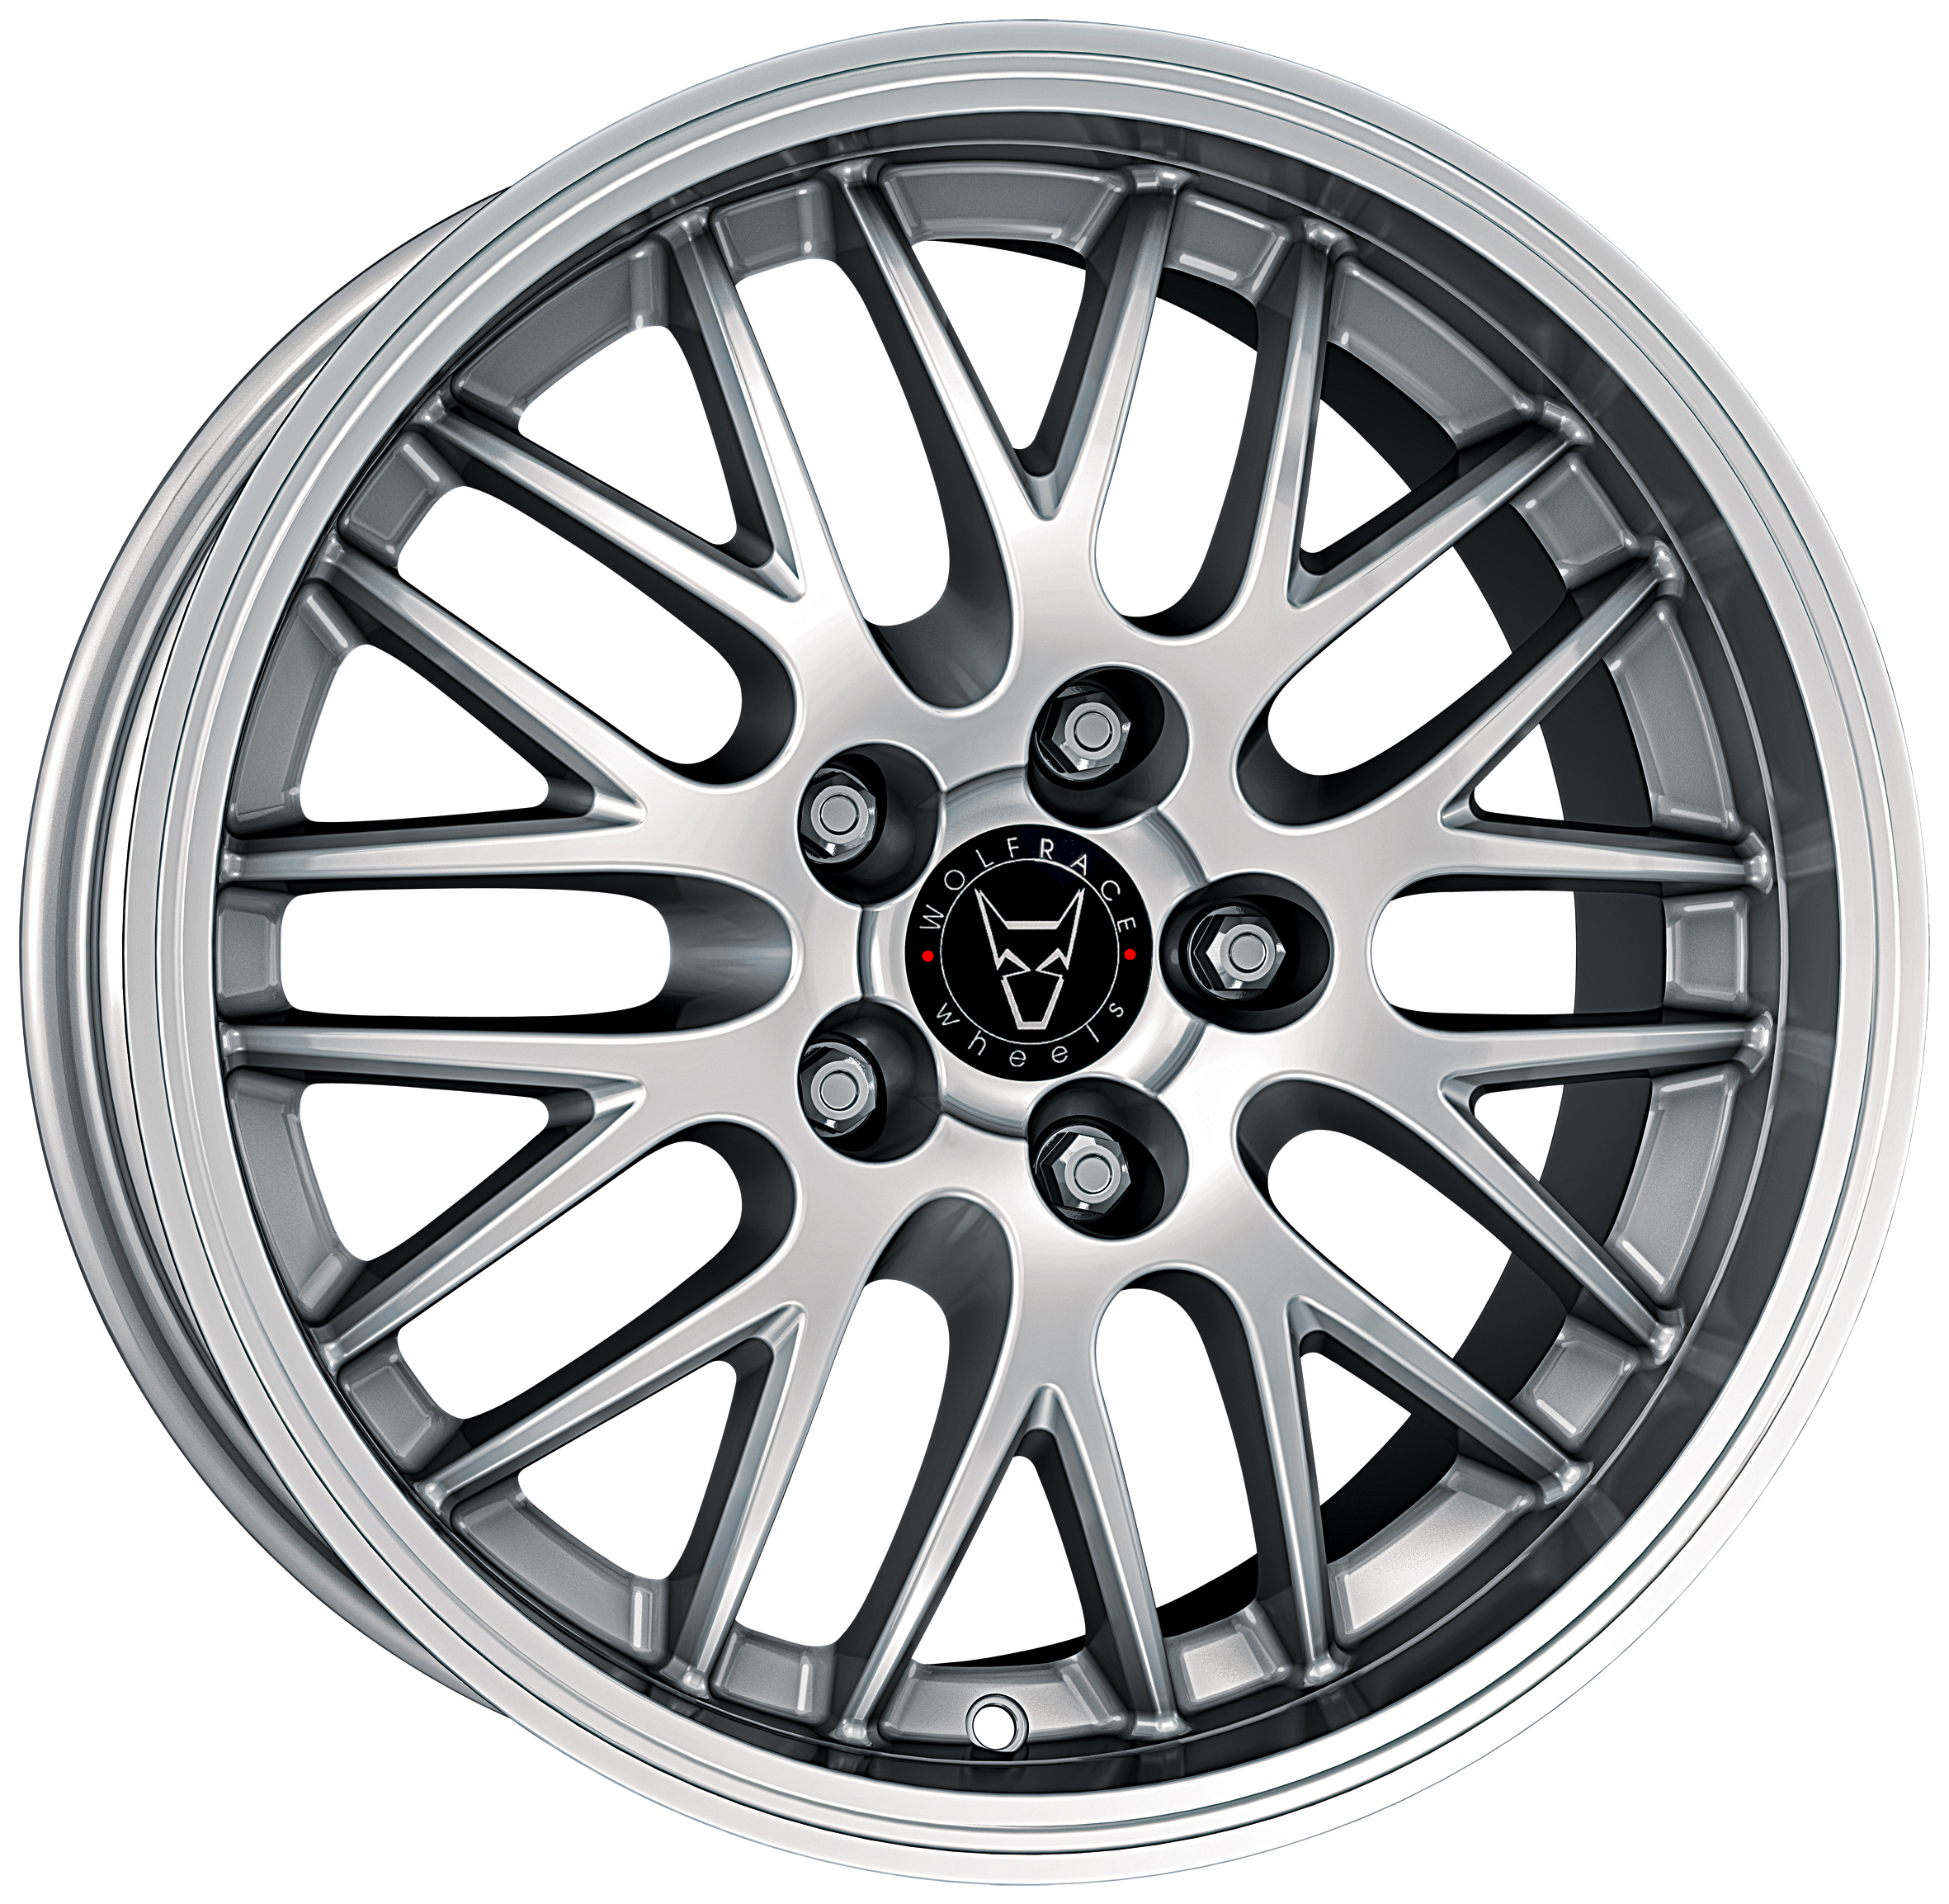 WOLFRACE GB NORANO 8x17 5x100 ET35 STRELING SILVER